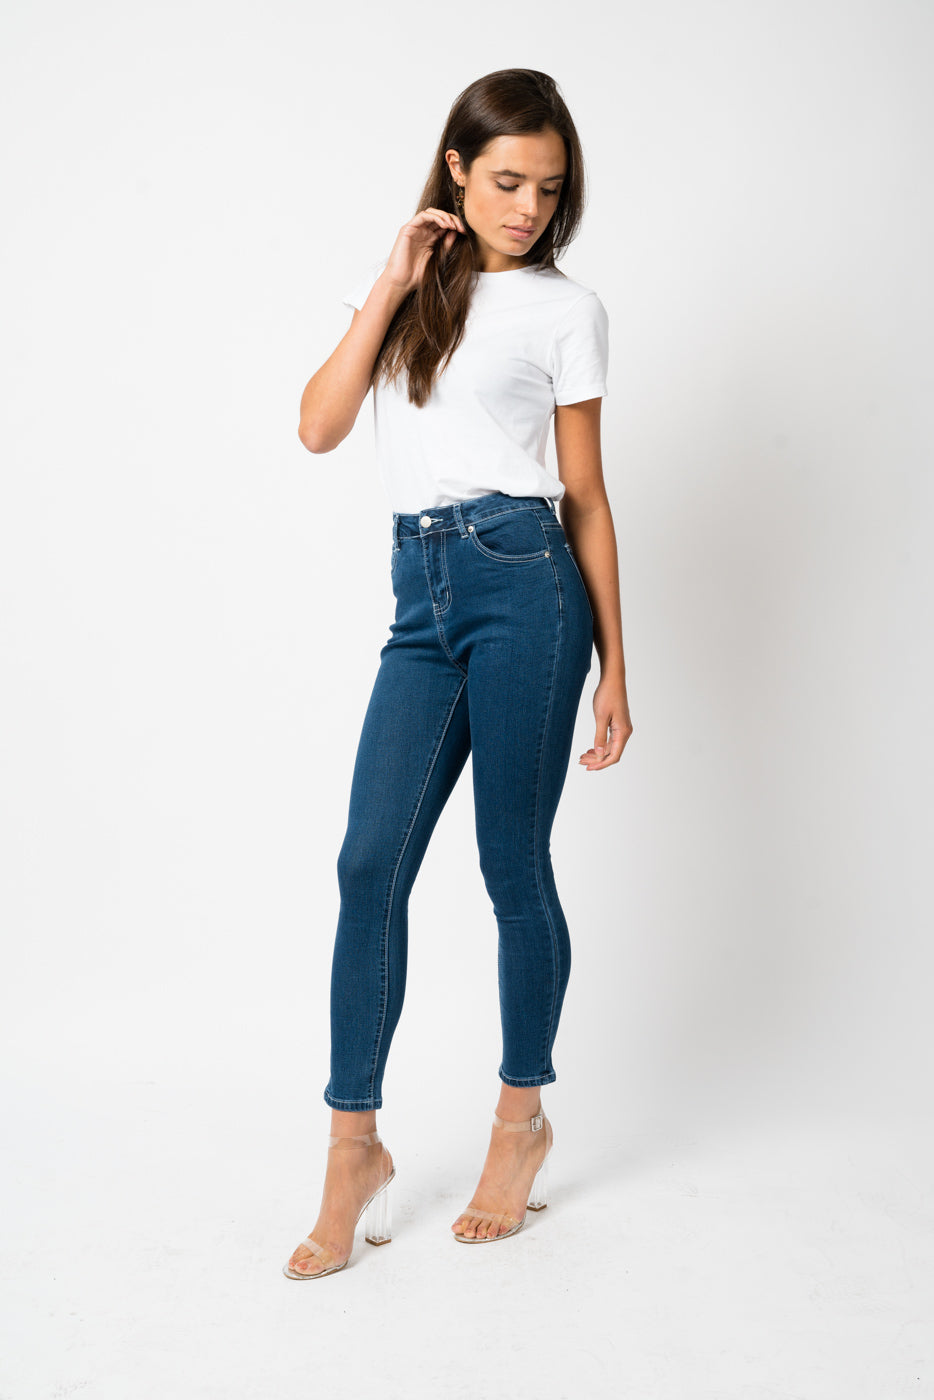 FAE LONDON - BAYWATER HIGH RISE SKINNY JEAN IN INDIGO